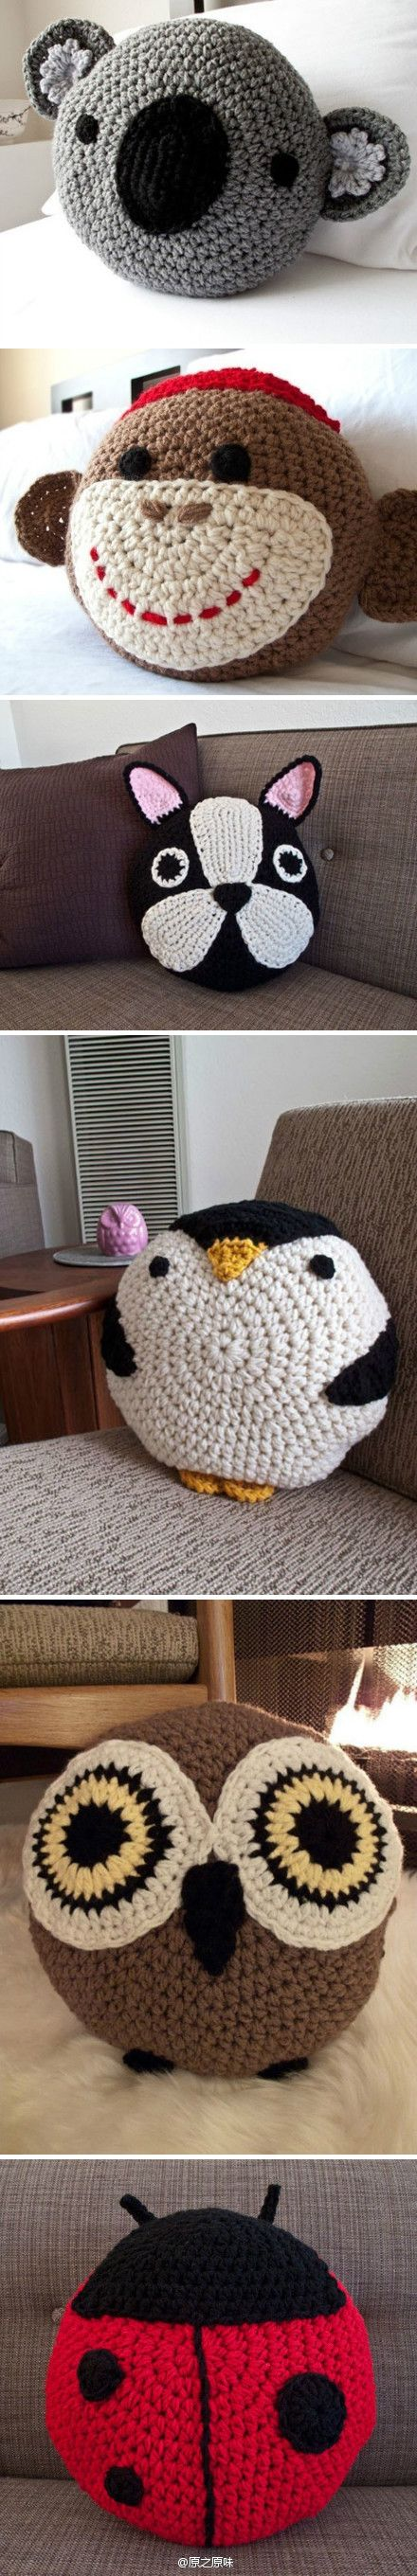 Crochet pillows - so cute!